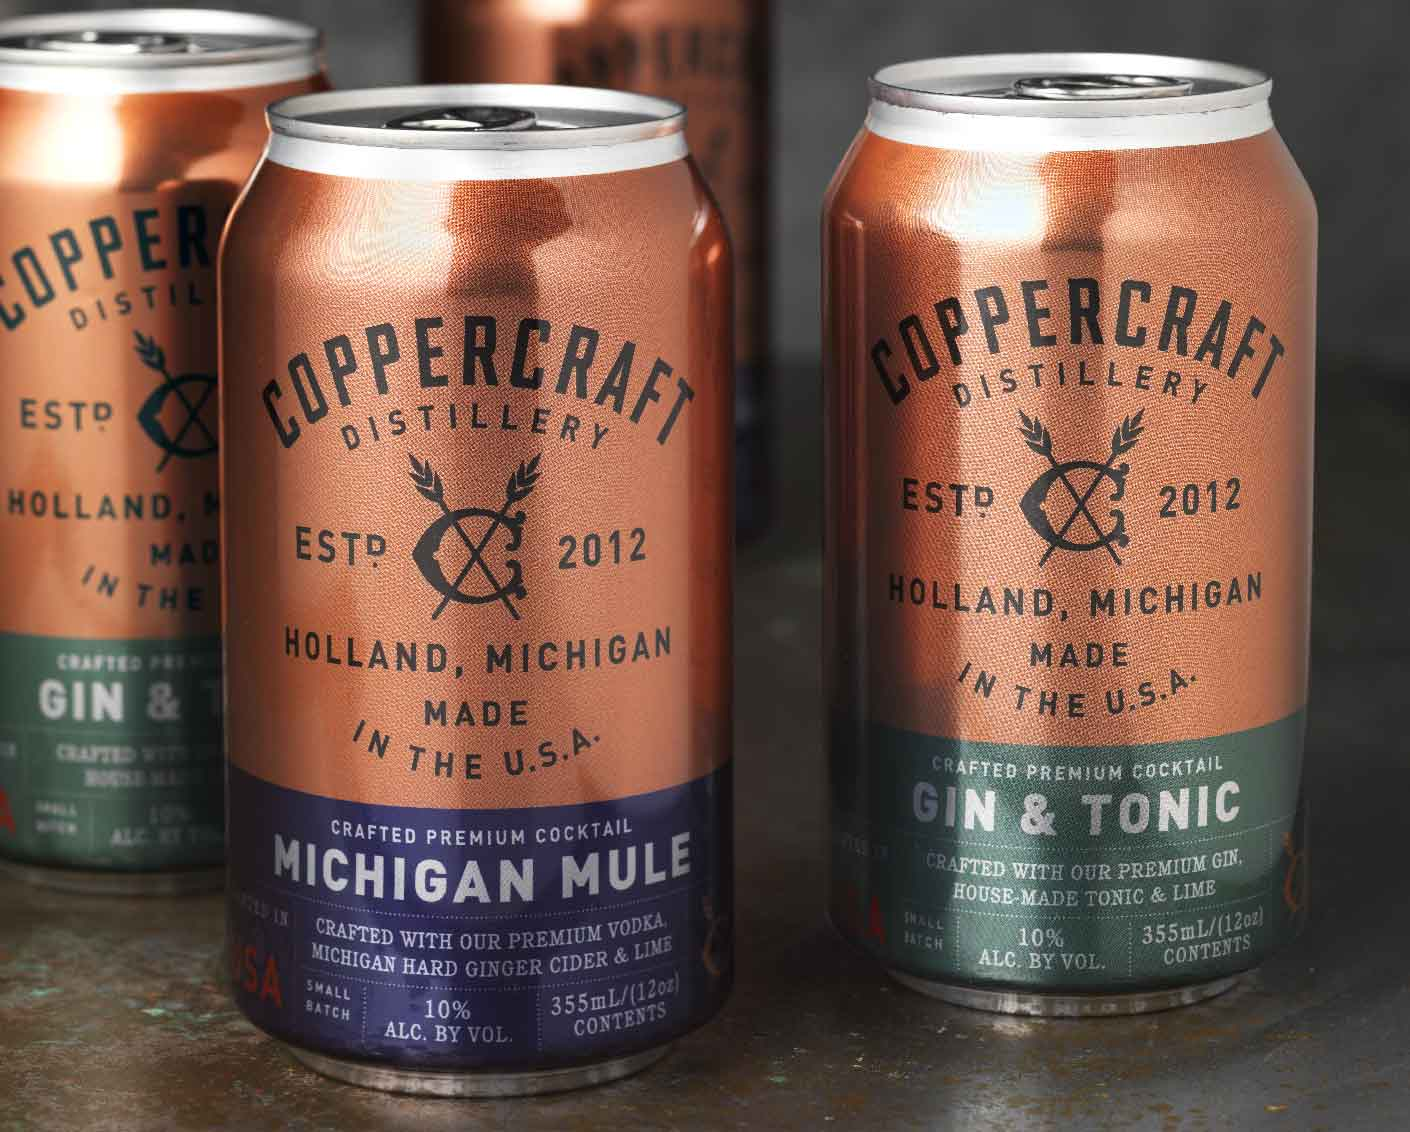 Coppercraft Distillery Canned Cocktails